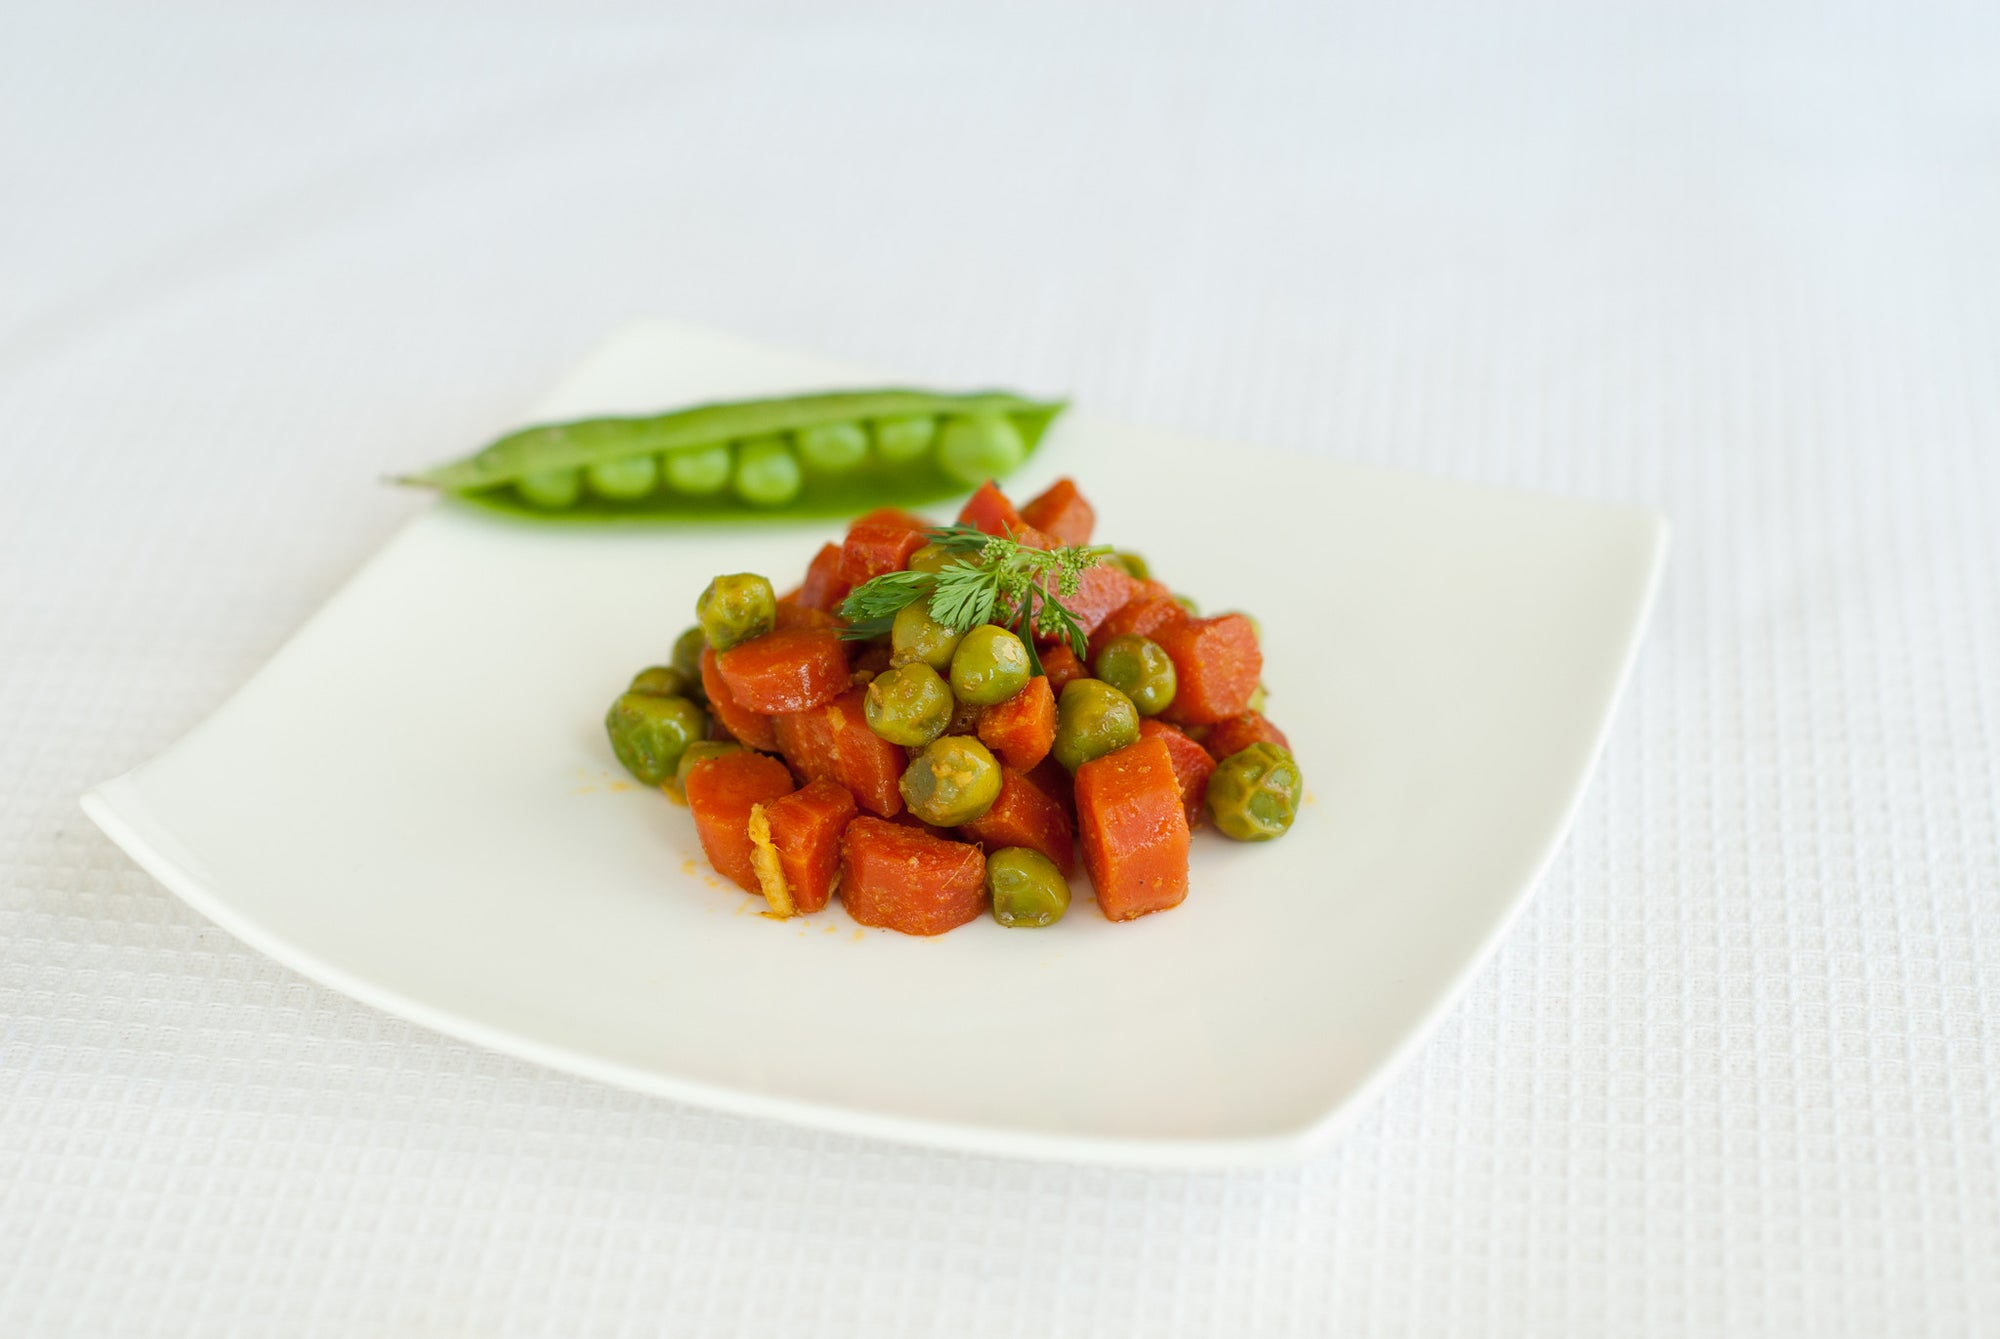 Jaswant's Kitchen Carrots & Peas recipe